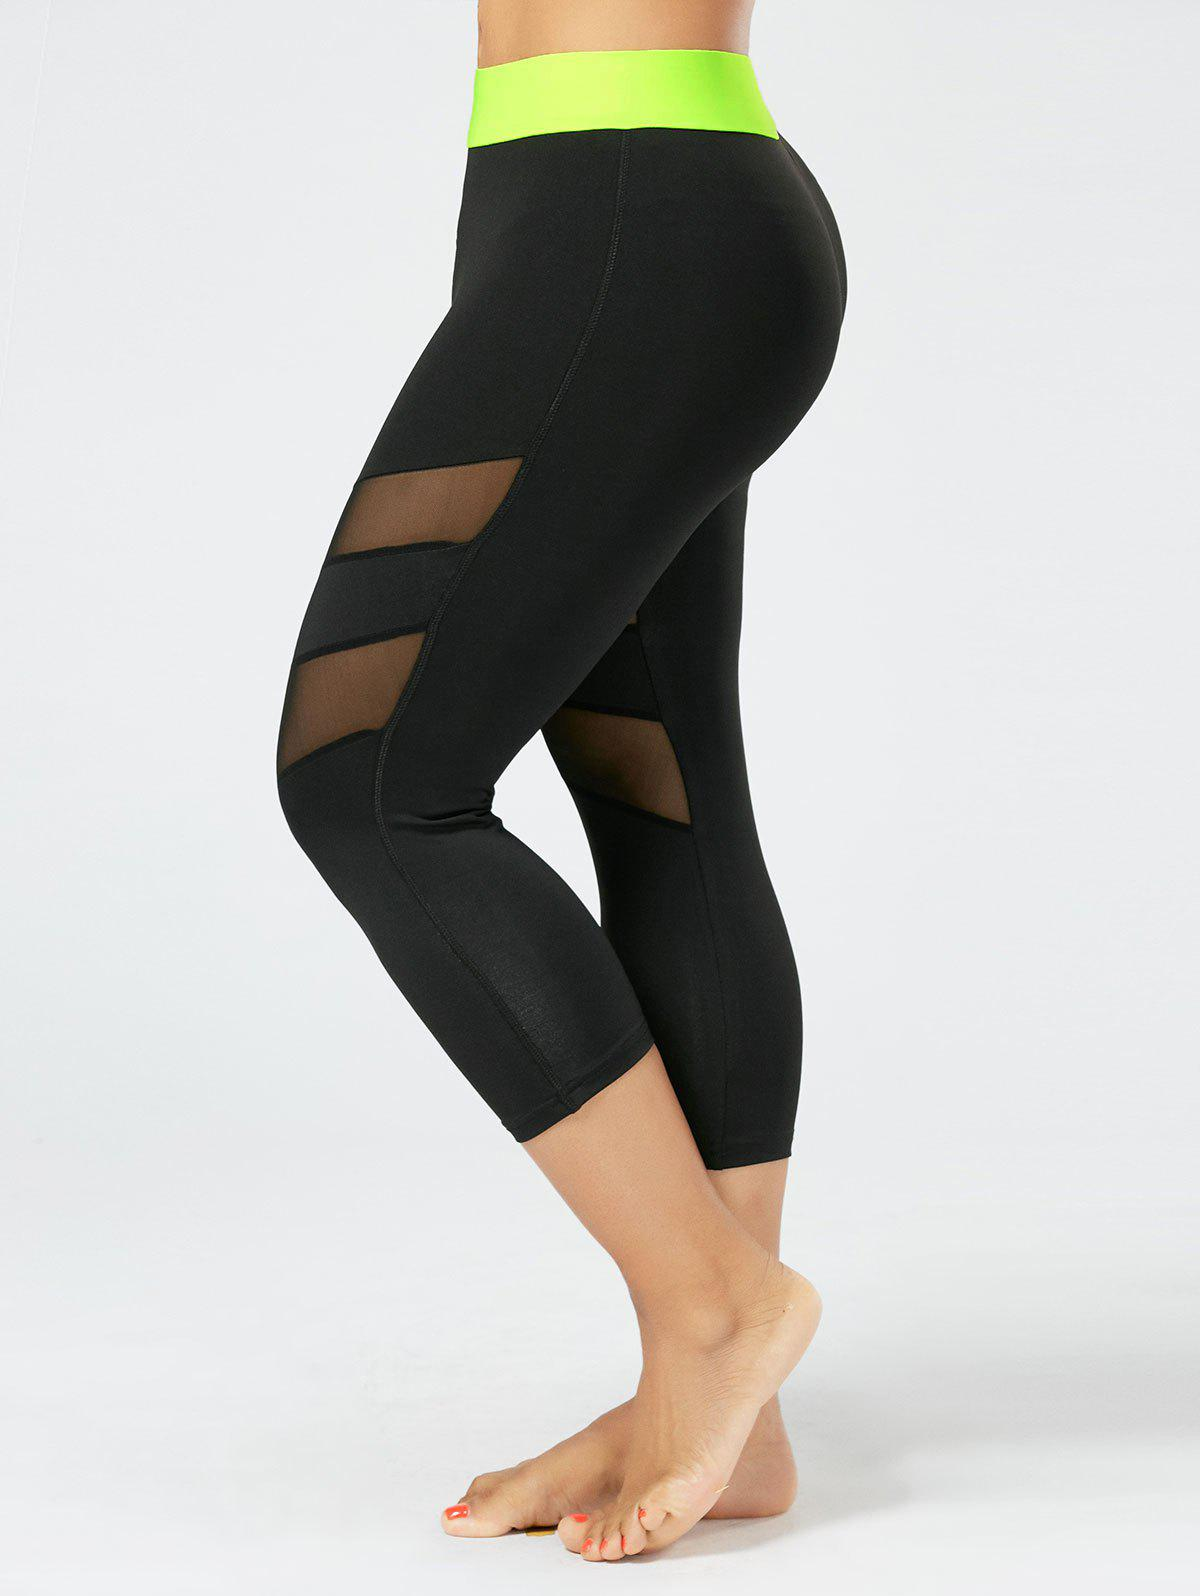 Mesh Panel Plus Size Capri Fitness LeggingsWOMEN<br><br>Size: 3XL; Color: BLACK; Style: Active; Length: Capri; Material: Cotton Blends,Polyester,Spandex; Fit Type: Skinny; Waist Type: High; Closure Type: Elastic Waist; Pattern Type: Solid; Pant Style: Pencil Pants; Elasticity: Elastic; Weight: 0.2500kg; Package Contents: 1 x Leggings;